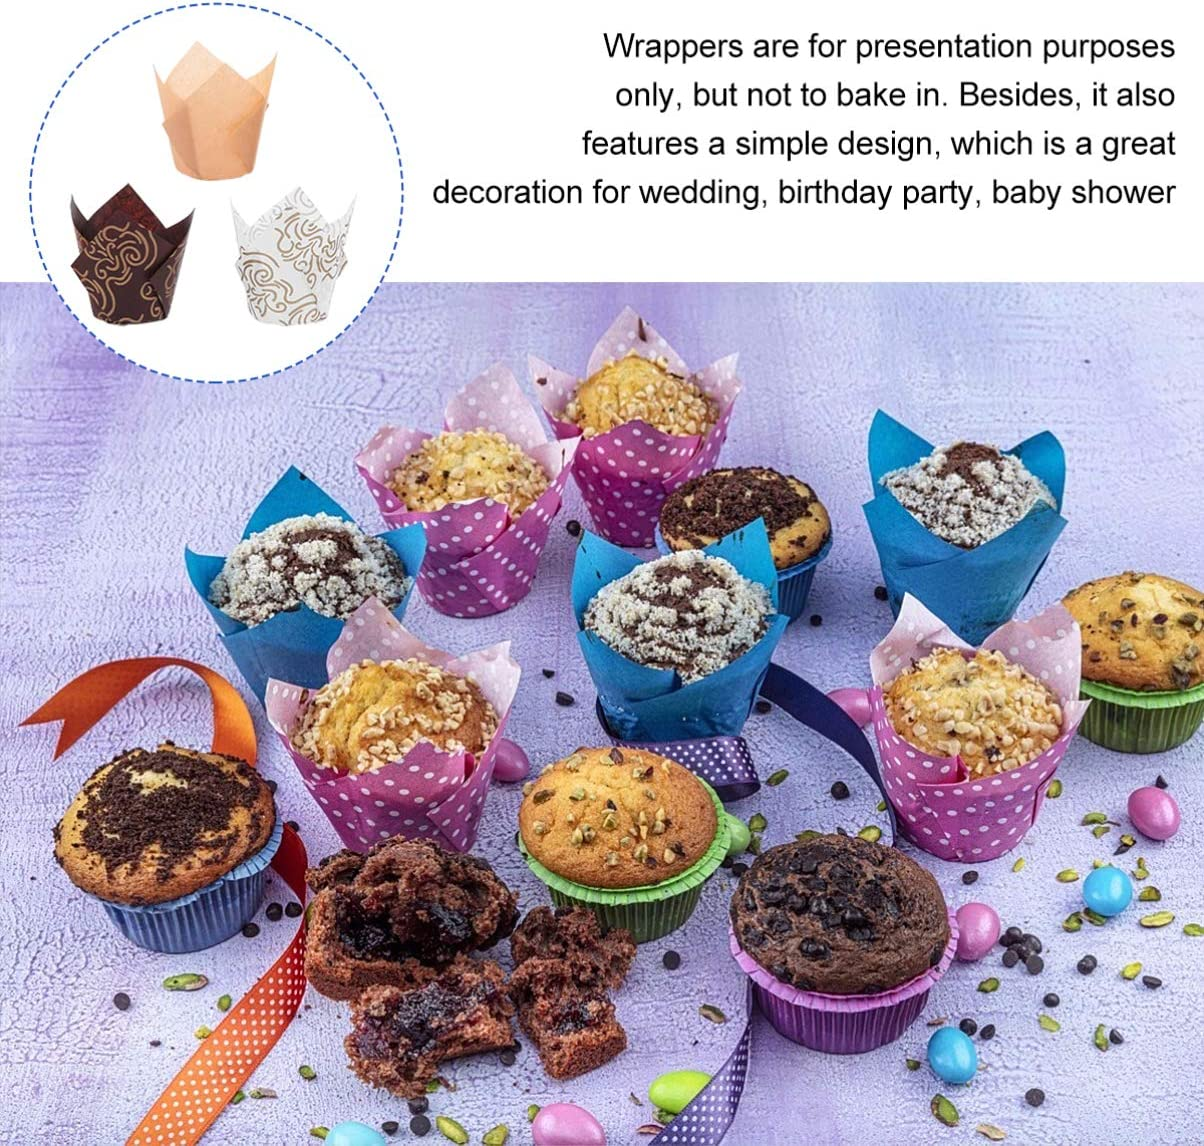 EXCEART 150pcs Cupcake Wrappers Printed Gold Tulip Cupcake Liners Paper Oil-Proof Baking Cups Muffin Cases Molds for Birthday Party